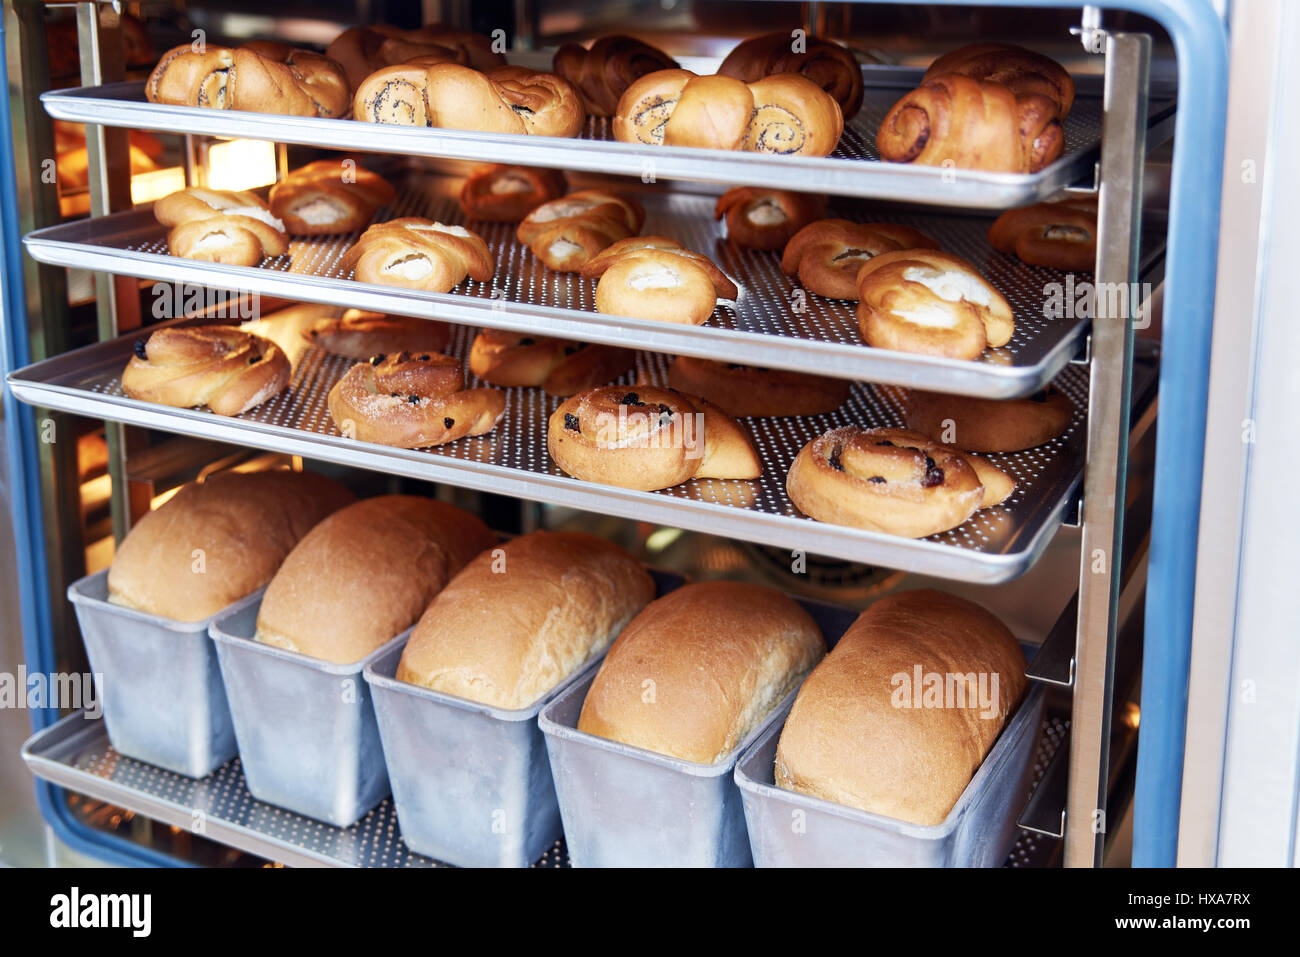 Dessert Bread Baking In Combi Steamer Production Oven At